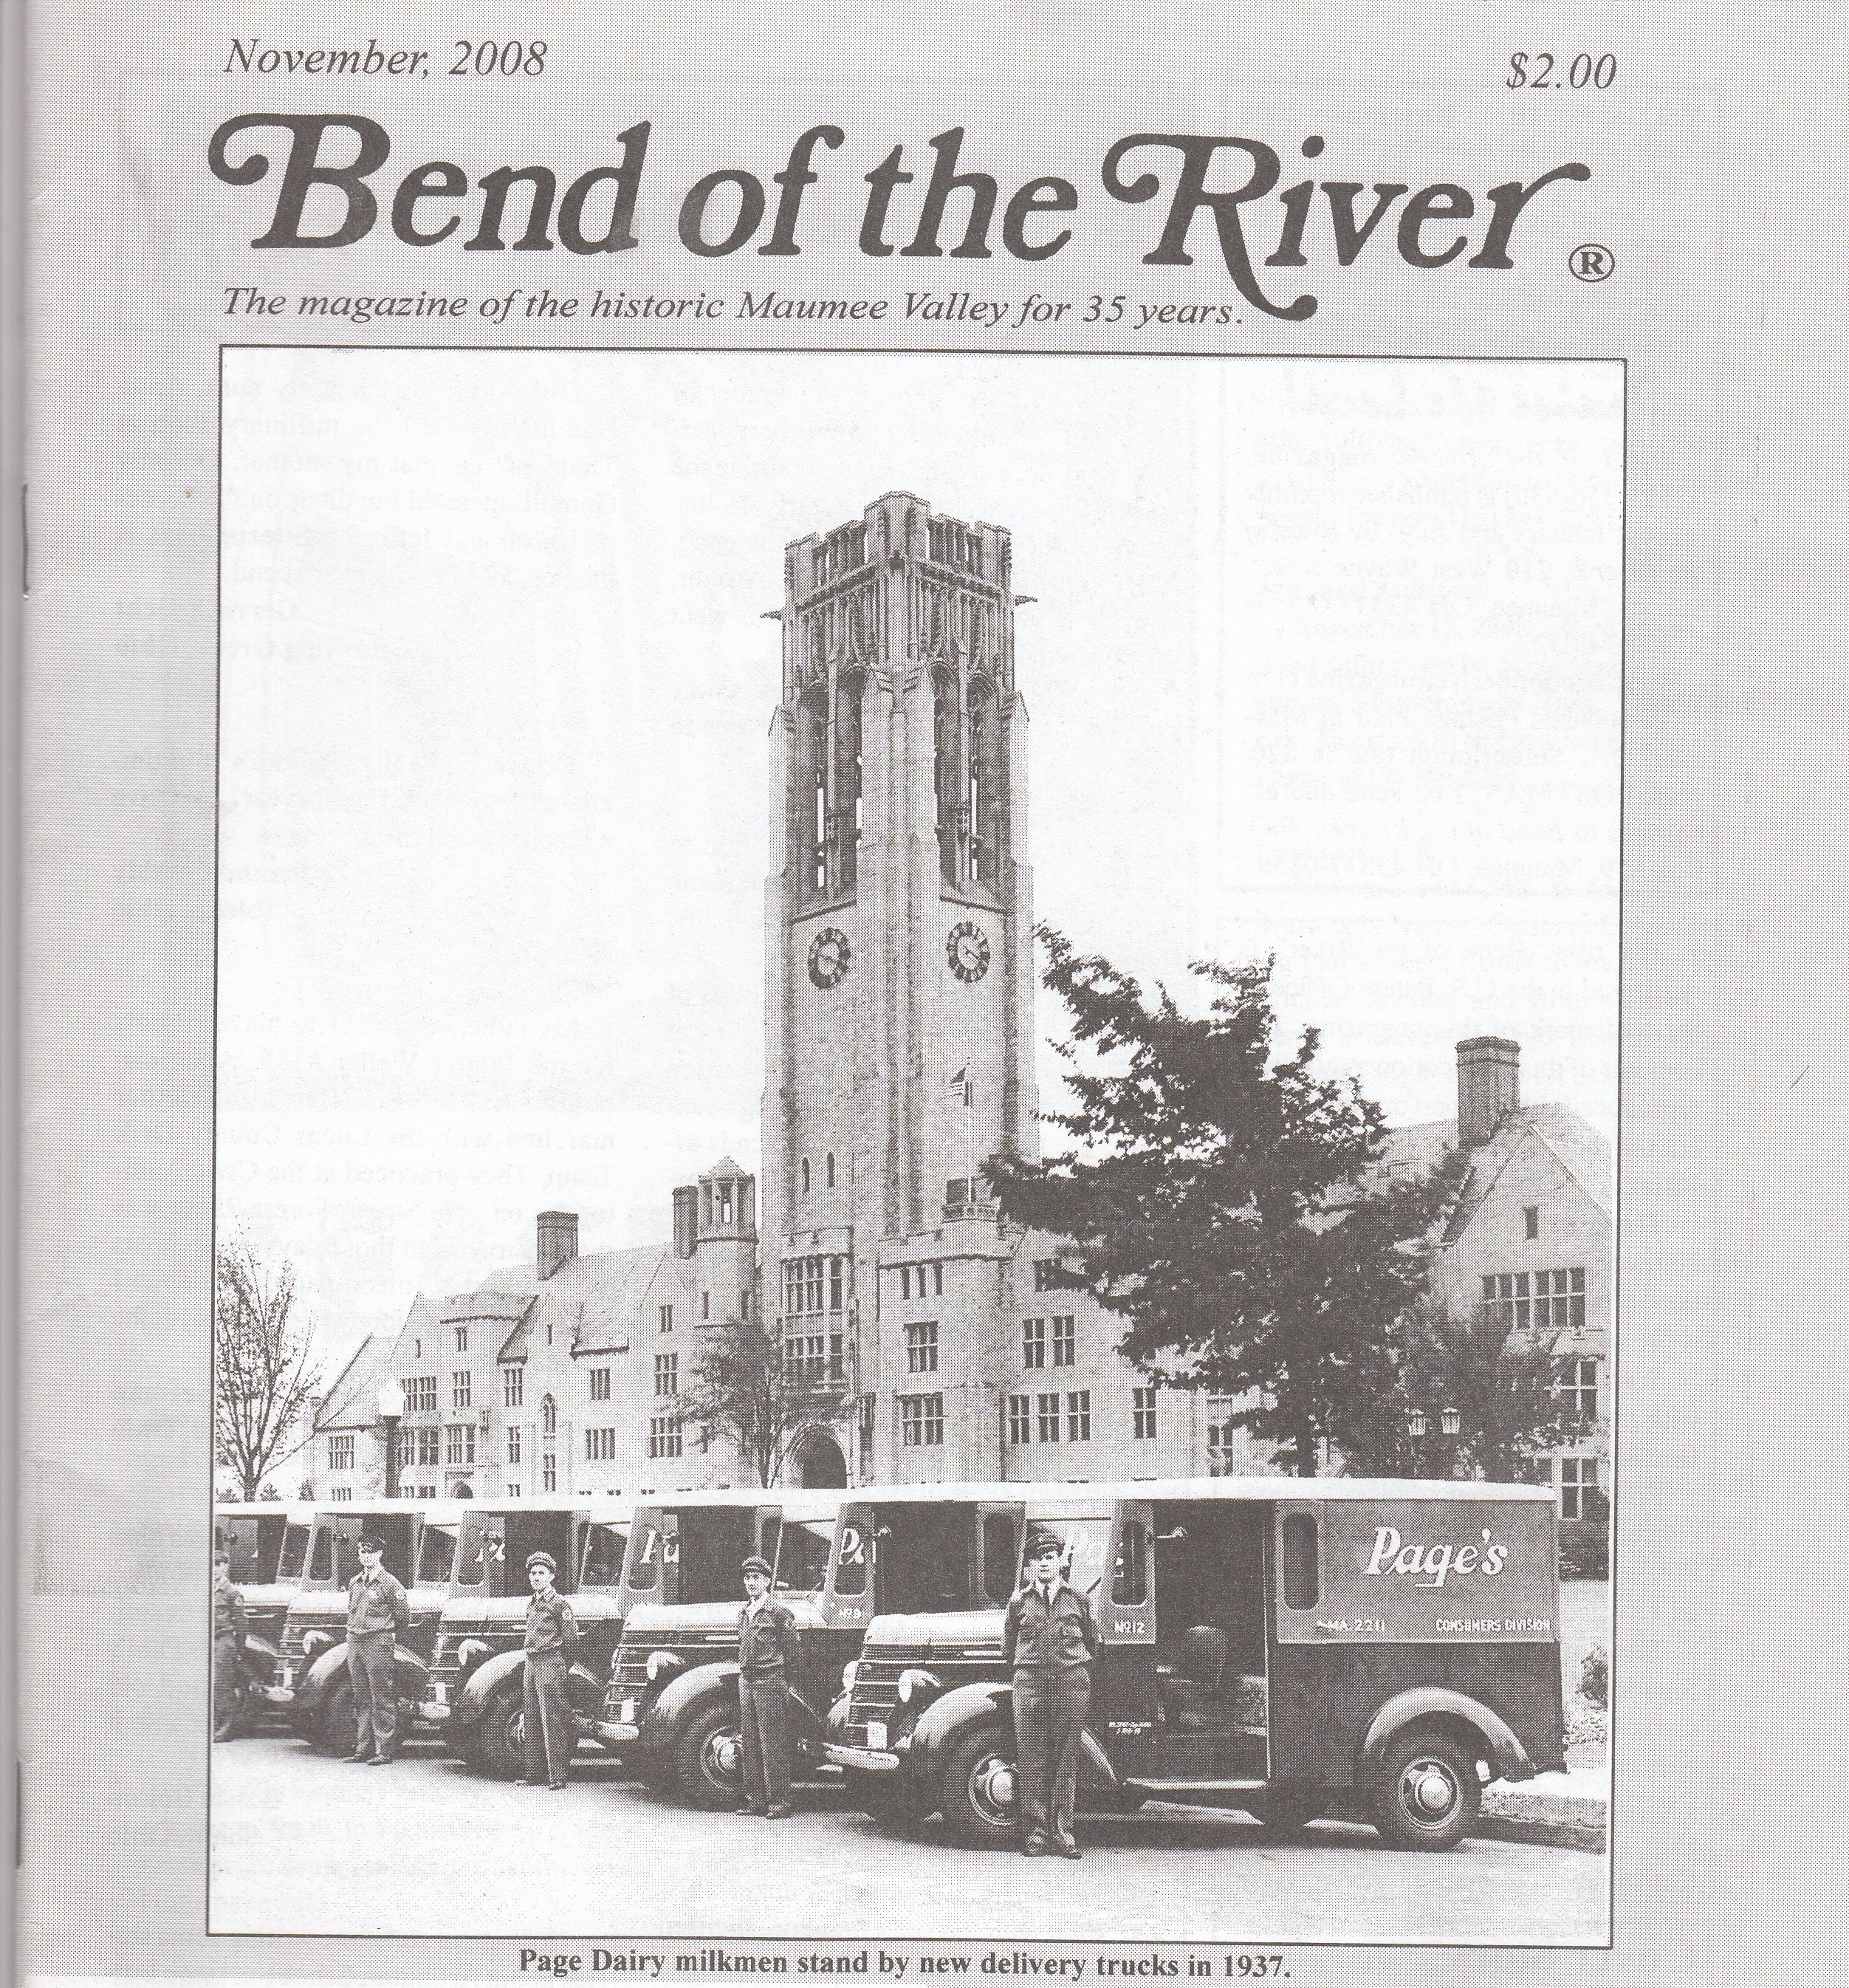 Bend of the River Magazine November 2008